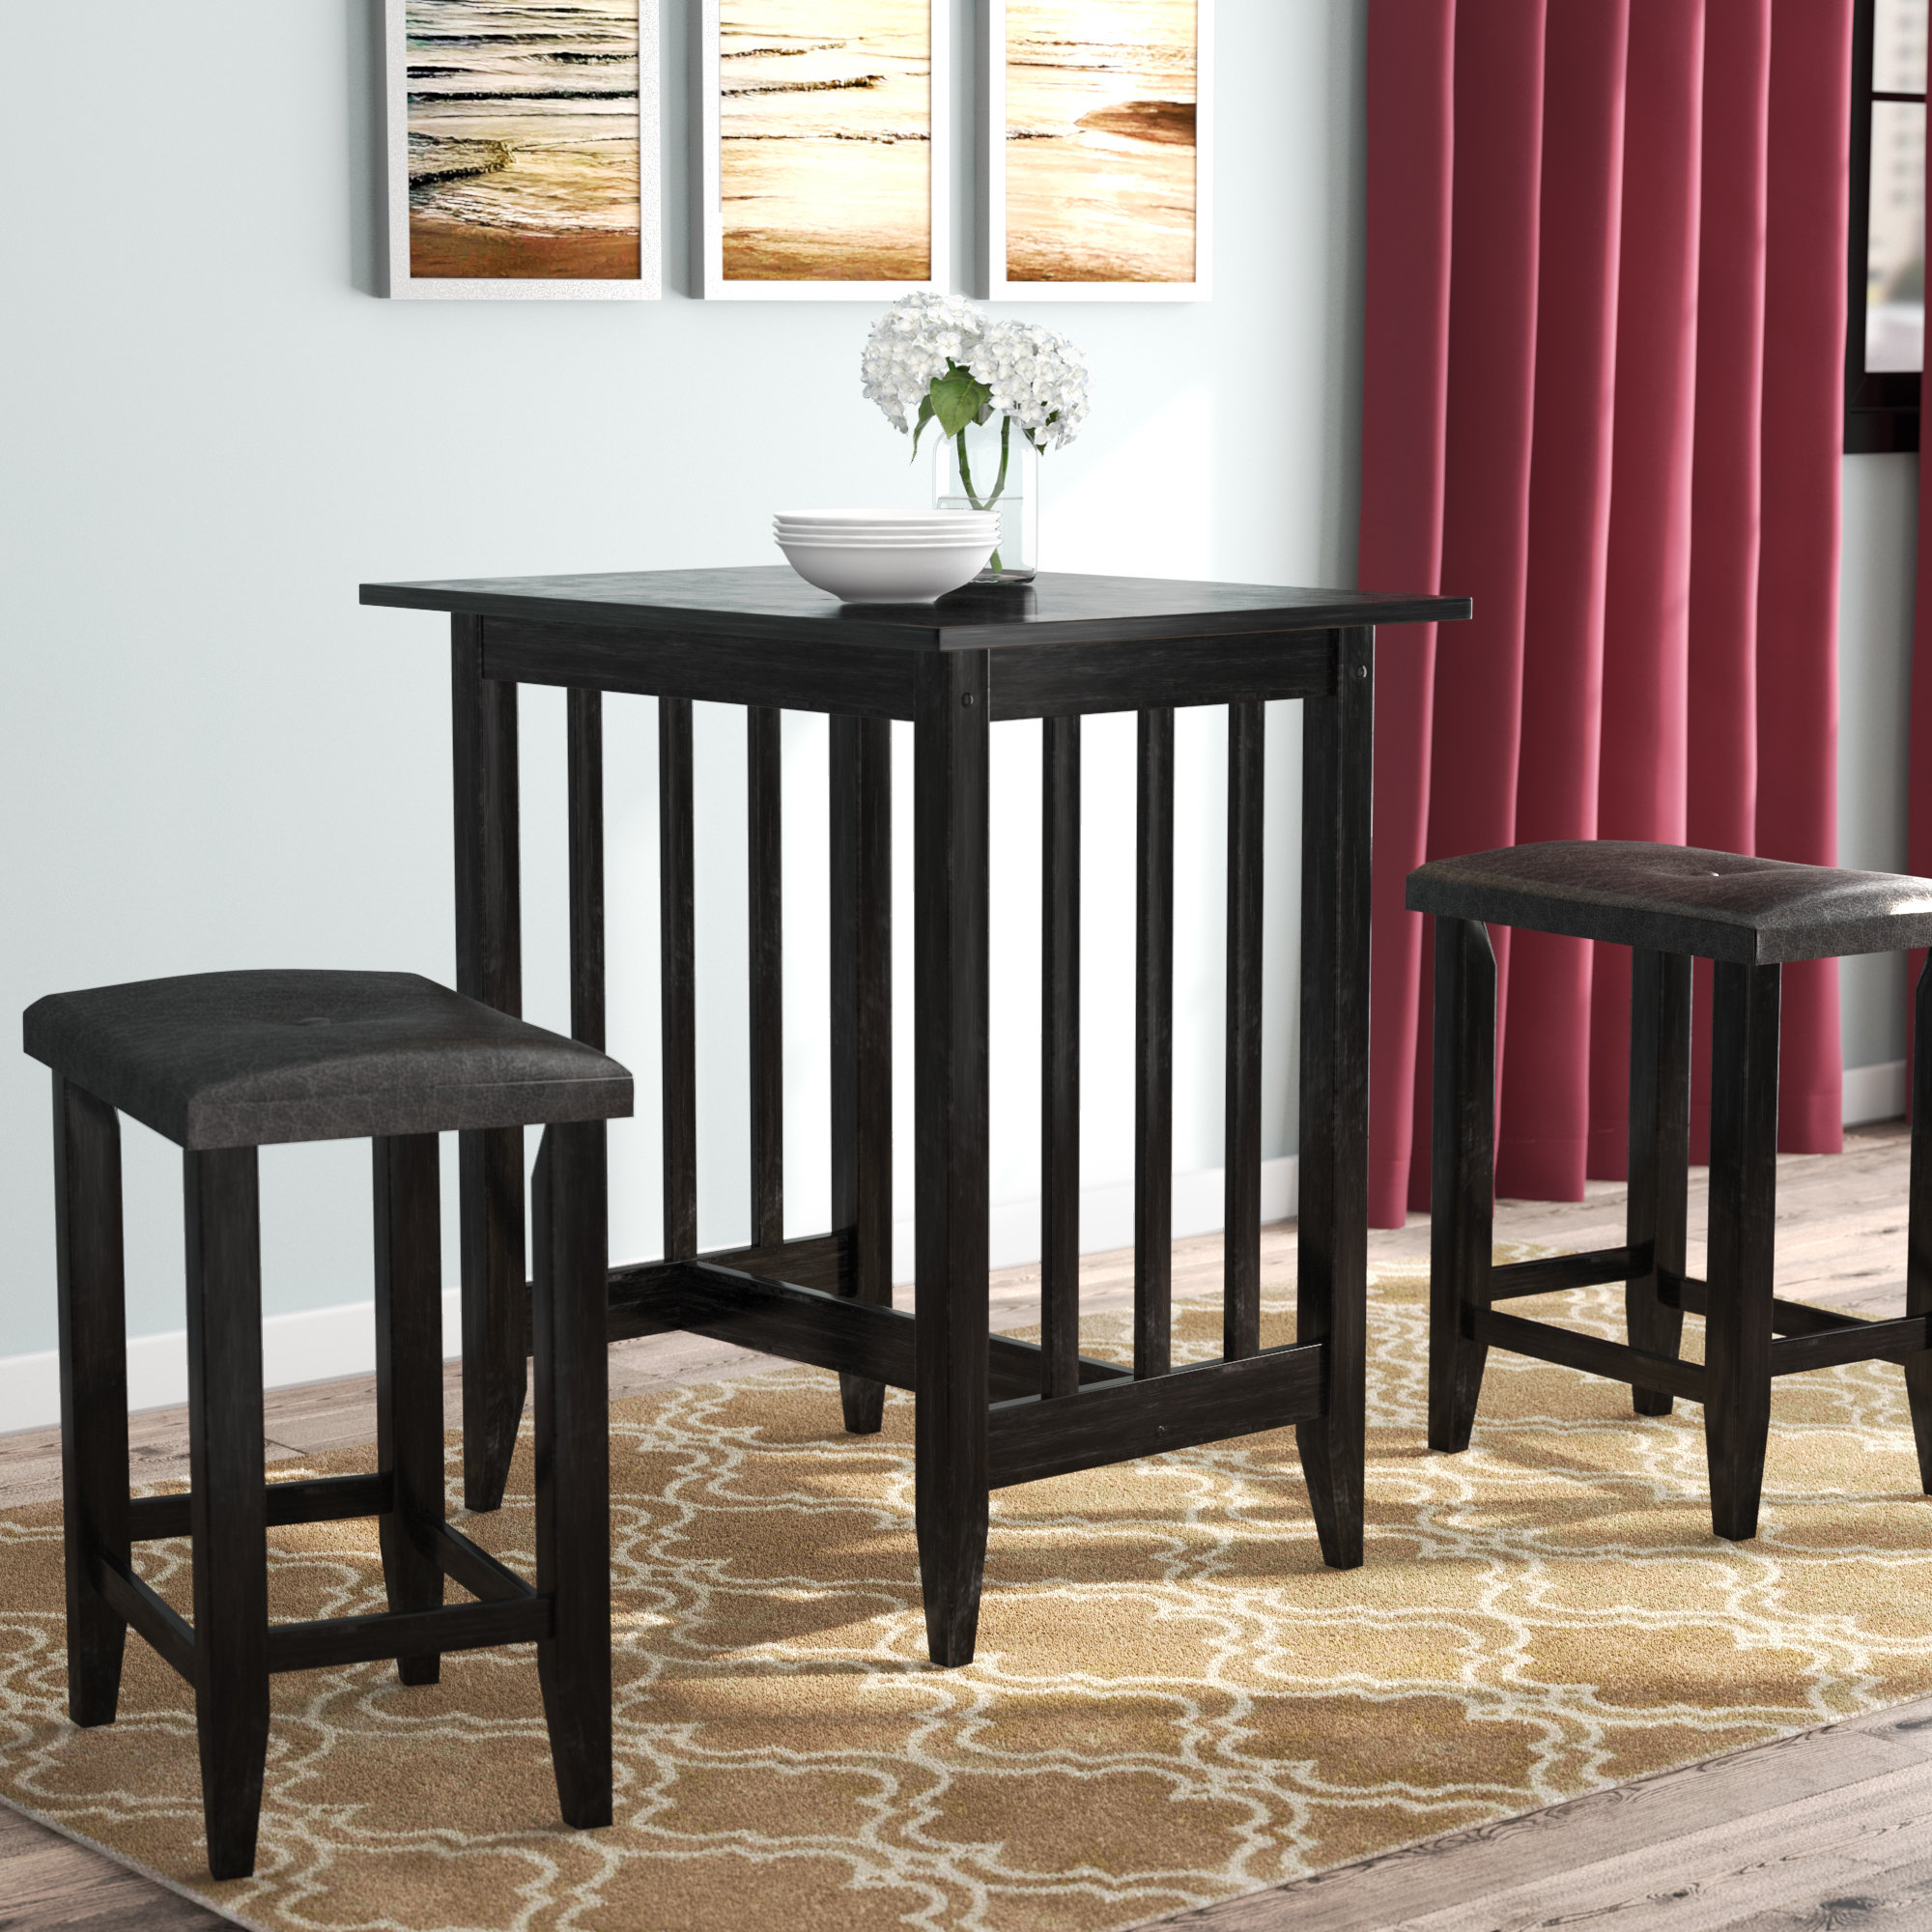 Hood Canal 3 Piece Dining Sets Intended For Most Popular Andover Mills Richland 3 Piece Counter Height Pub Table Set (Gallery 6 of 25)